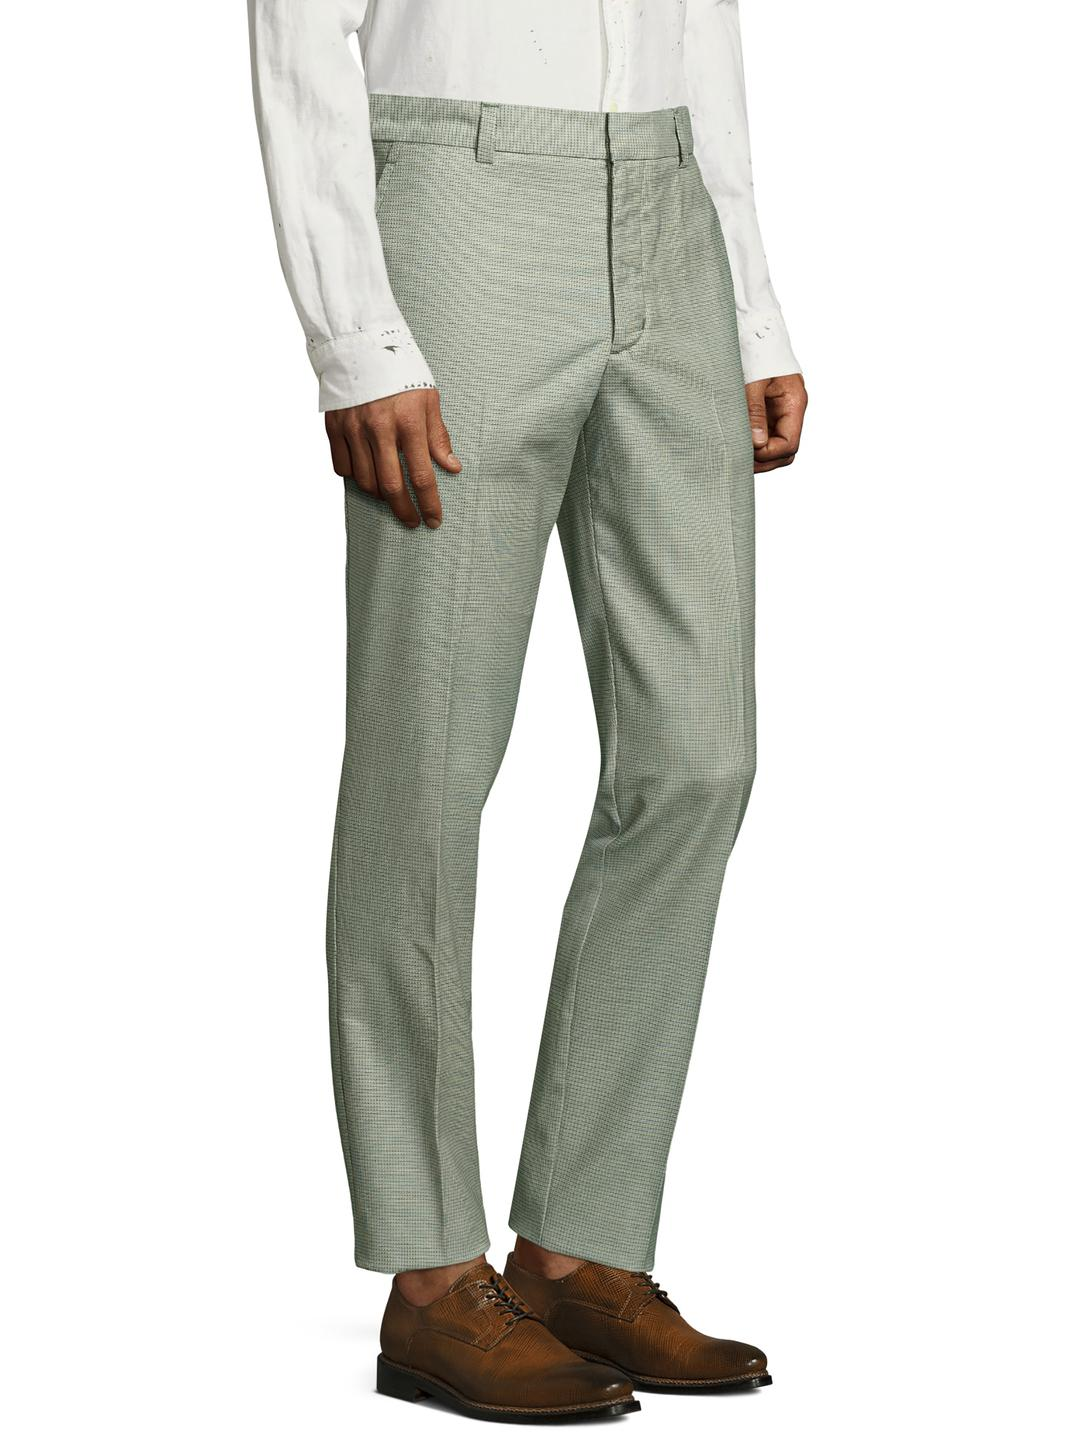 c3e9faba307 Lyst - Mr Turk Clyde Printed Trousers in Green for Men